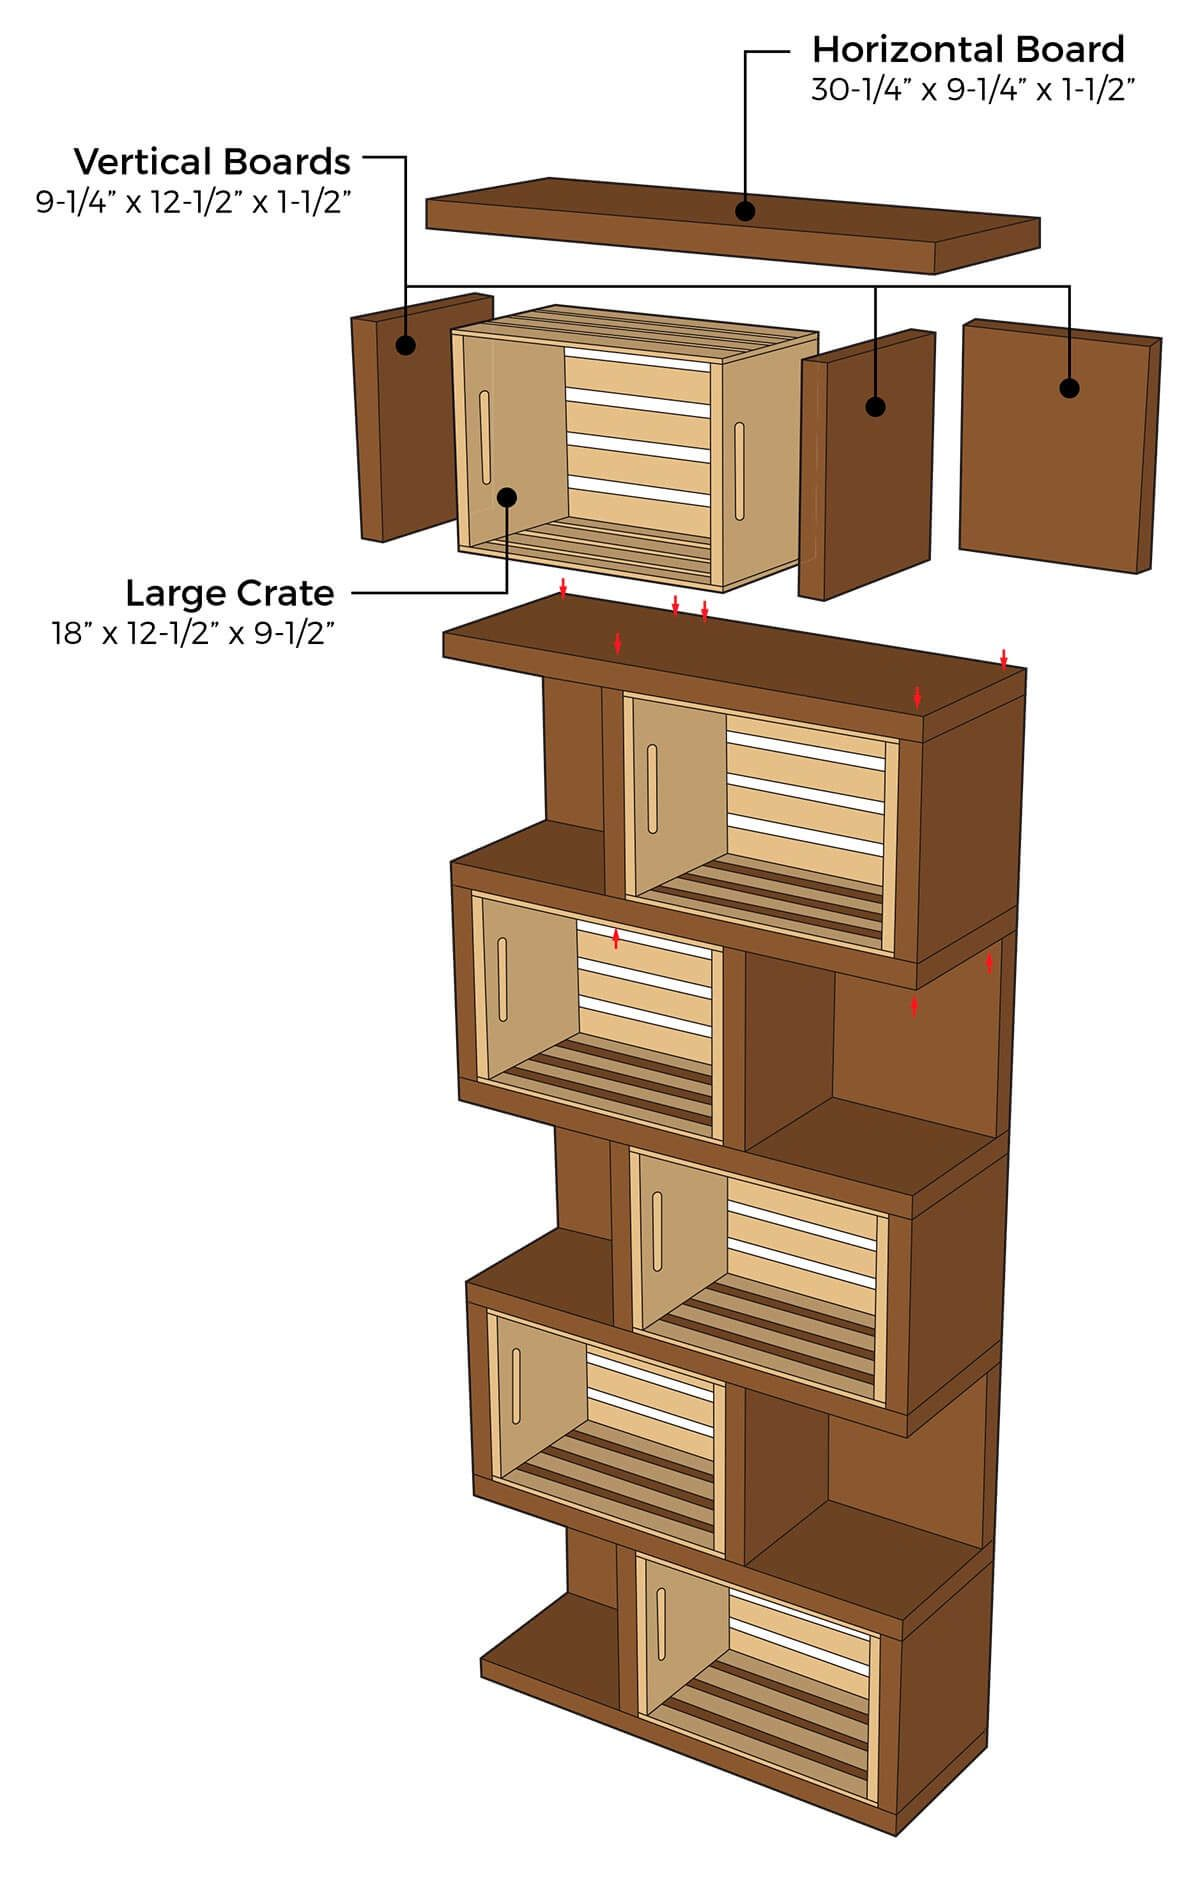 crates and pallet bookcase illustration